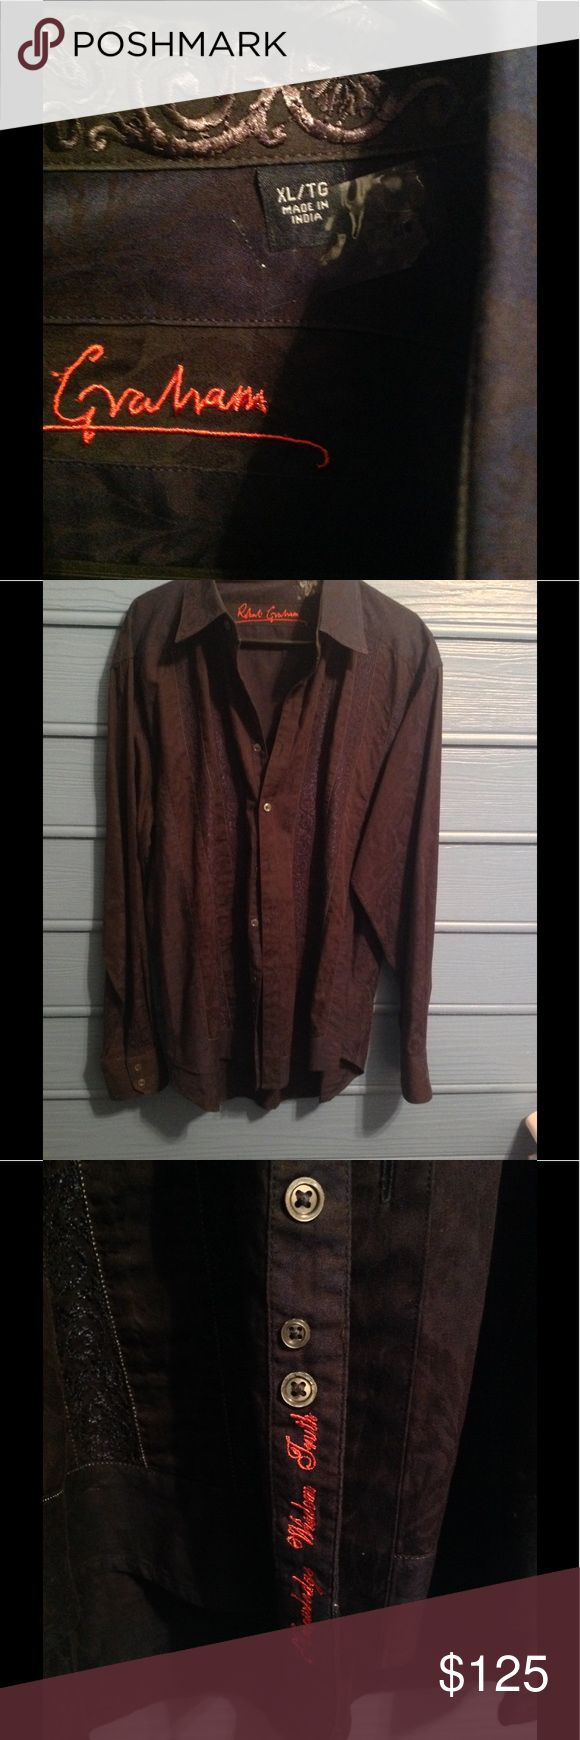 Robert Graham Black Luxury Button down Gorgeous artistry put into this dark horse Button down , sexy , masculine , mint used condition dry cleaned only Robert Graham Shirts Dress Shirts